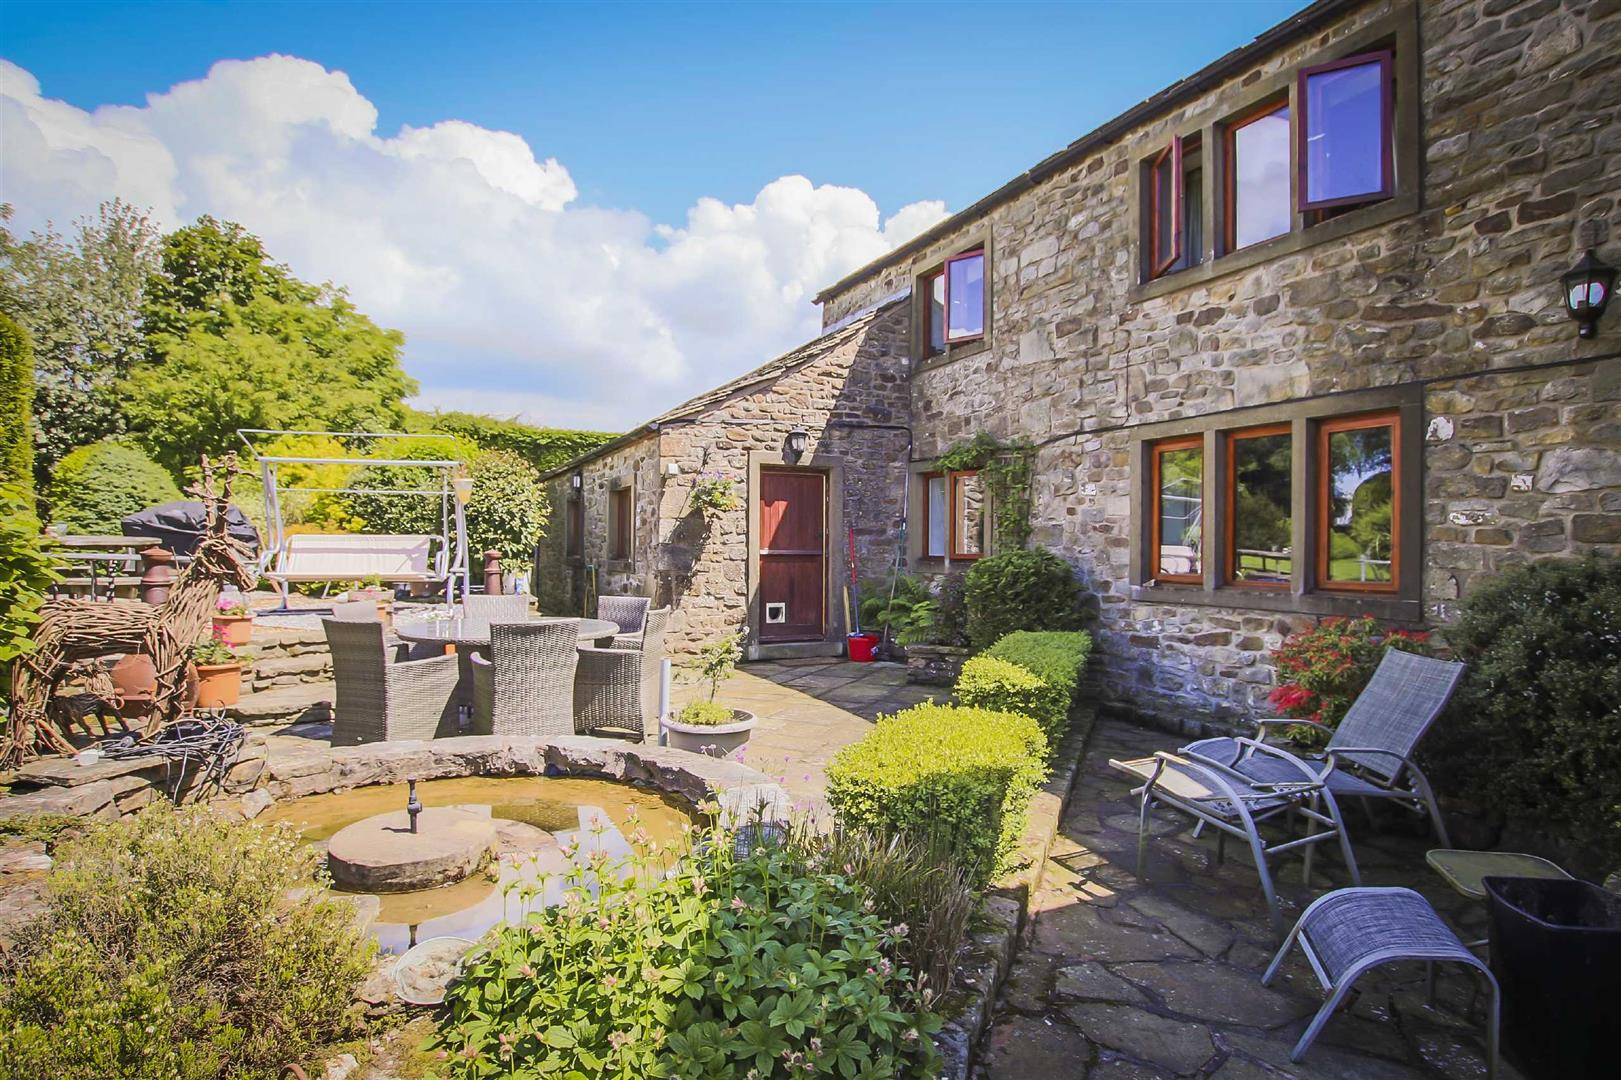 4 Bedroom Barn Conversion For Sale - Image 17